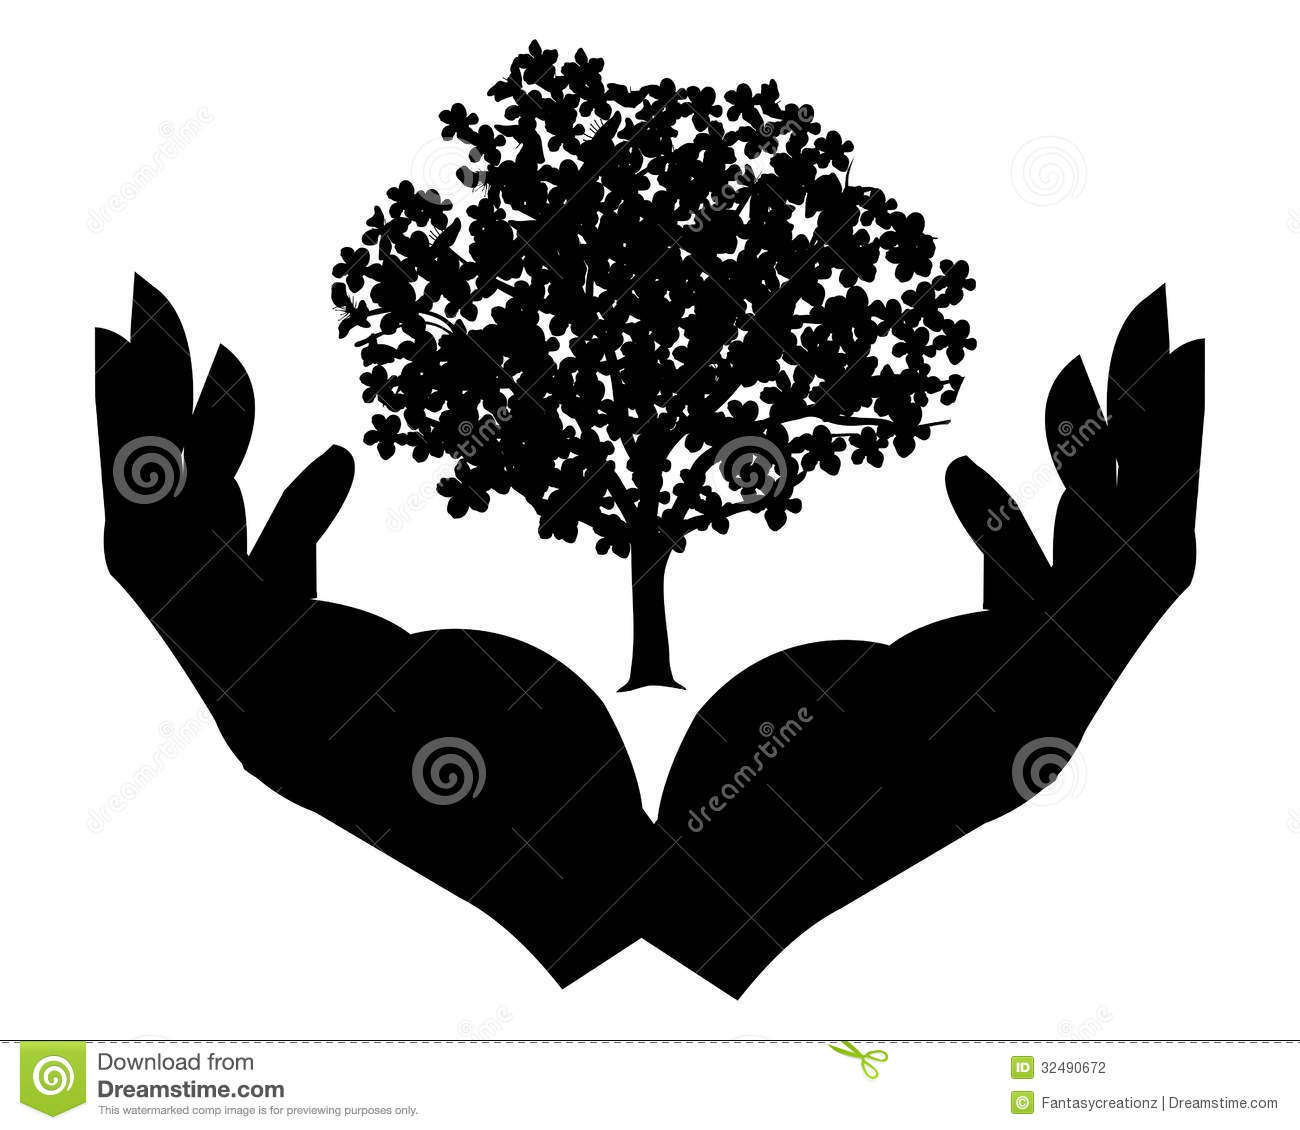 Save trees clipart clipart royalty free stock Save trees clipart - ClipartFest clipart royalty free stock